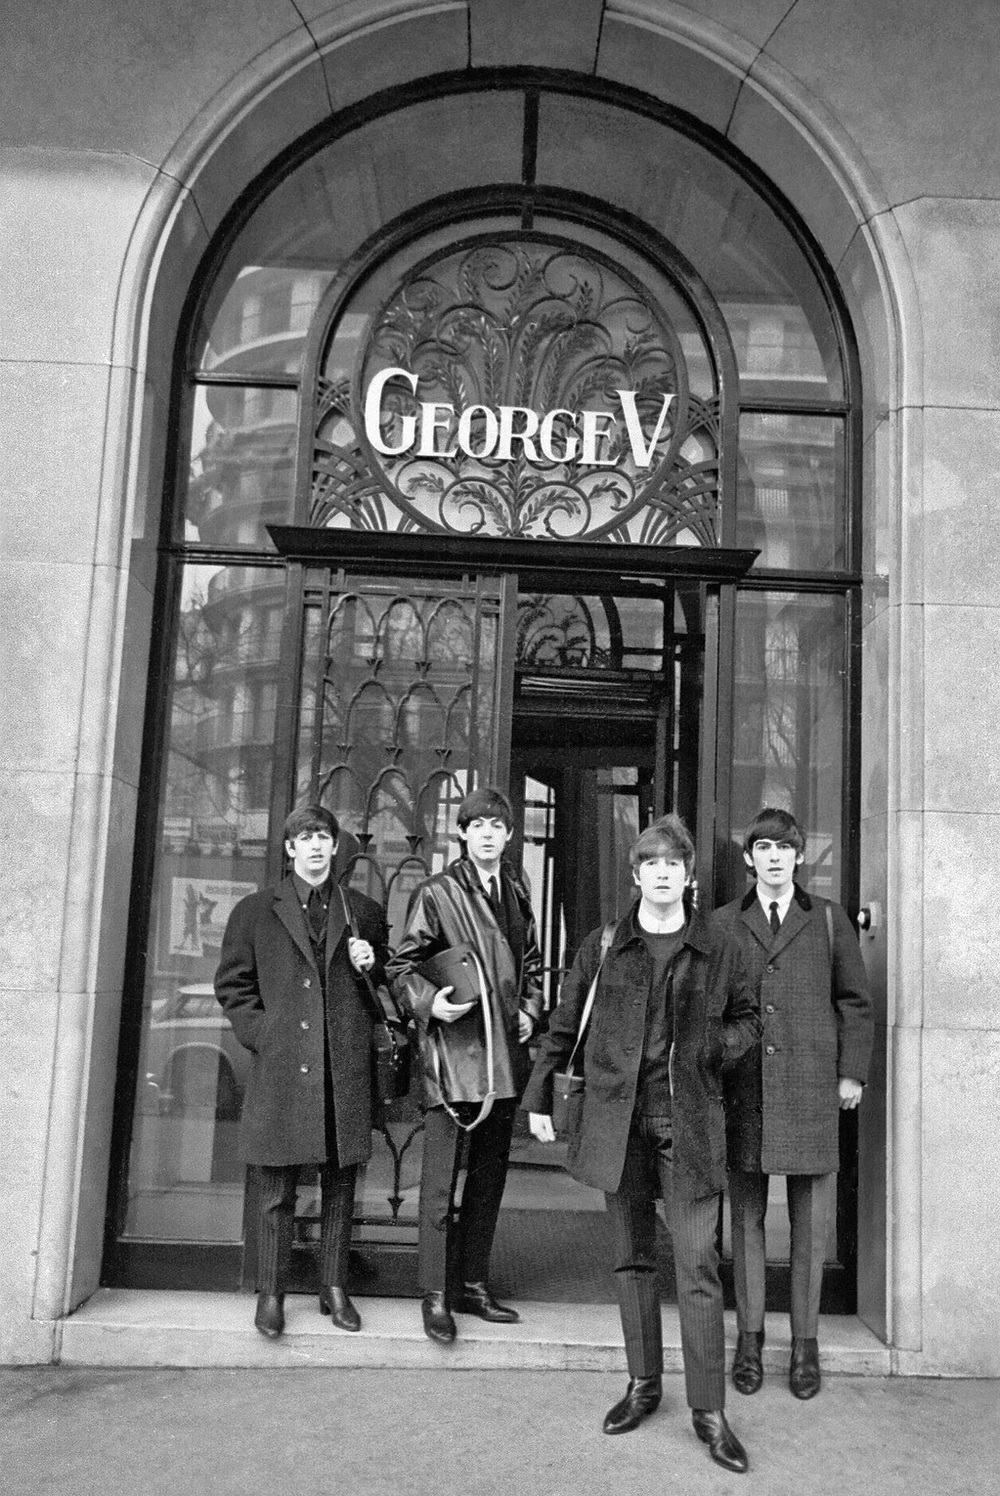 The Beatles outside the George V hotel, Paris, 1964.